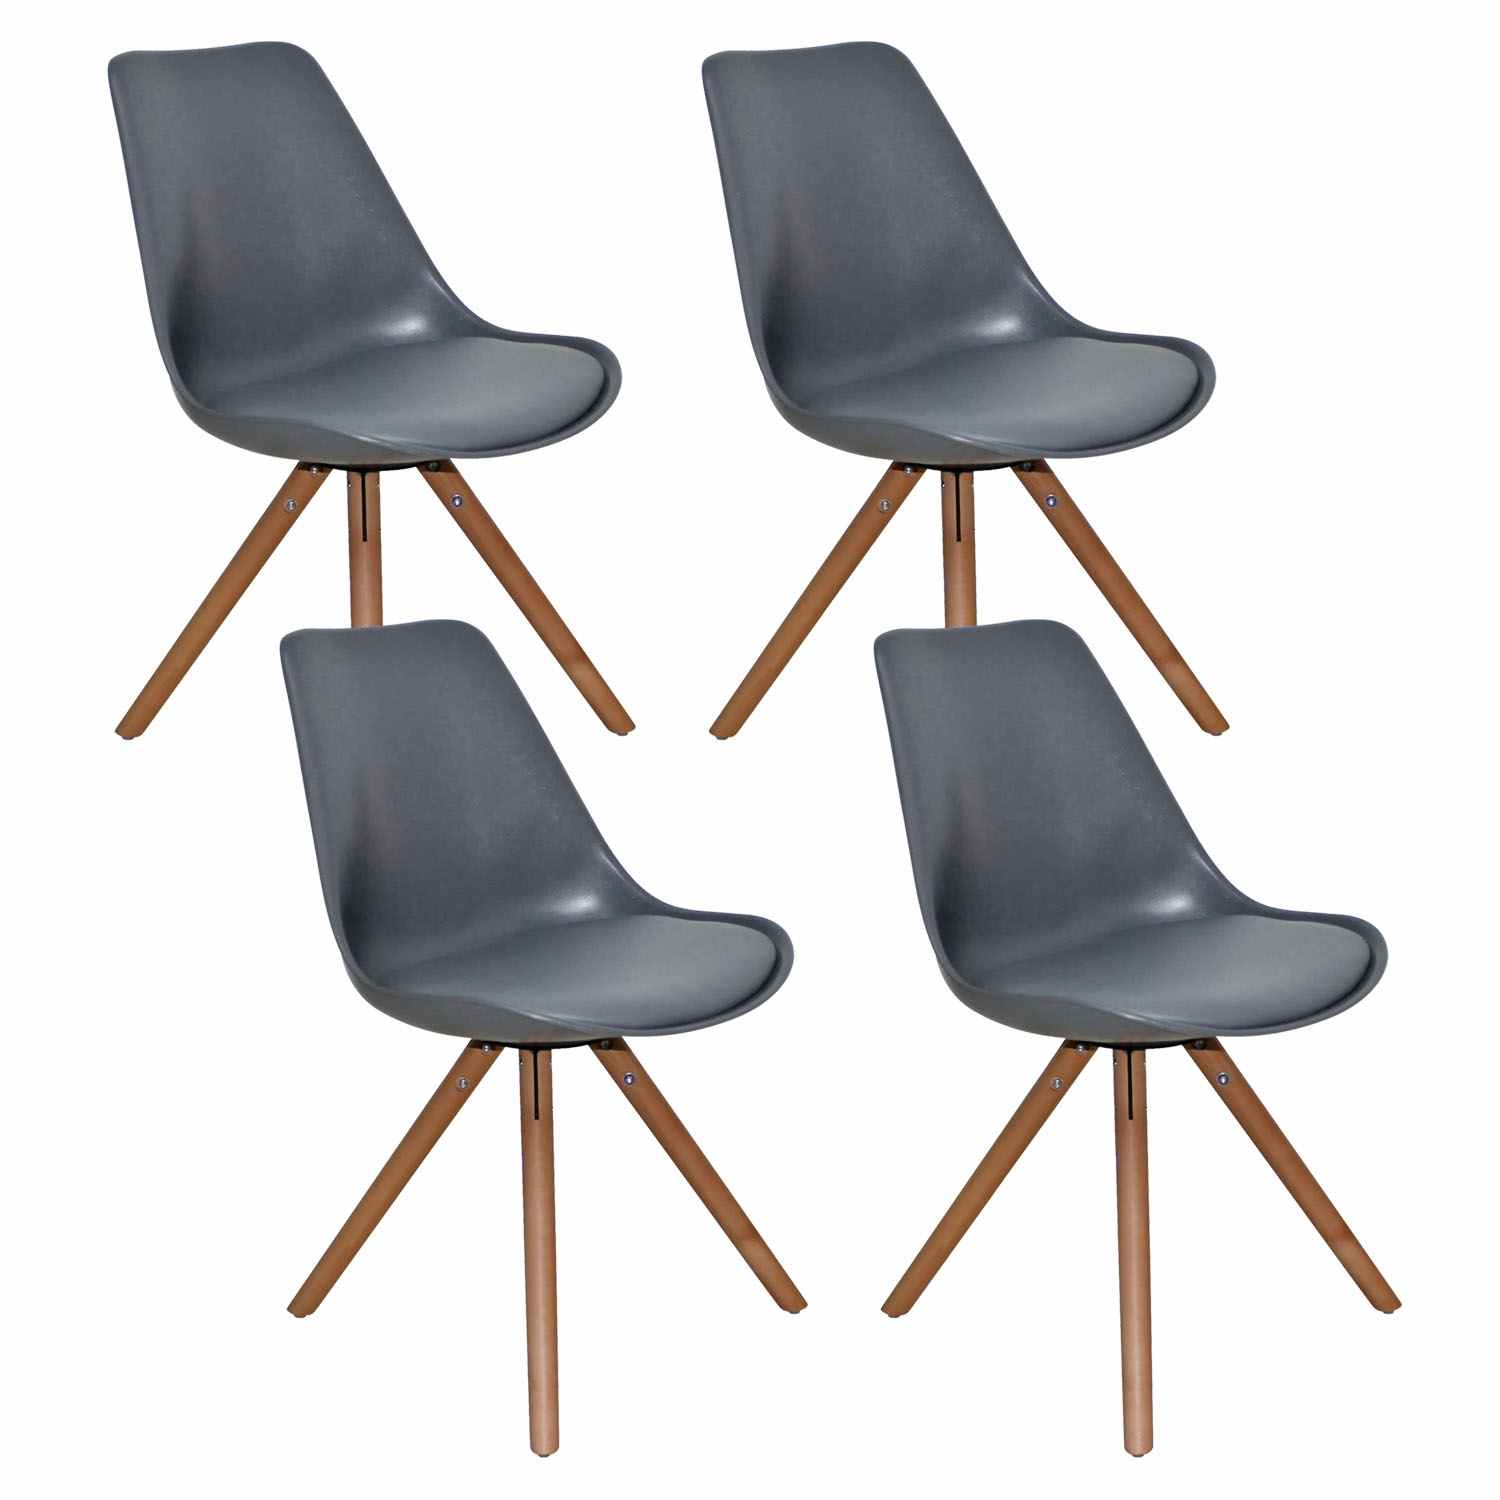 Deco in paris lot de 4 chaises design gris velta velta - Lot de 4 chaises design ...